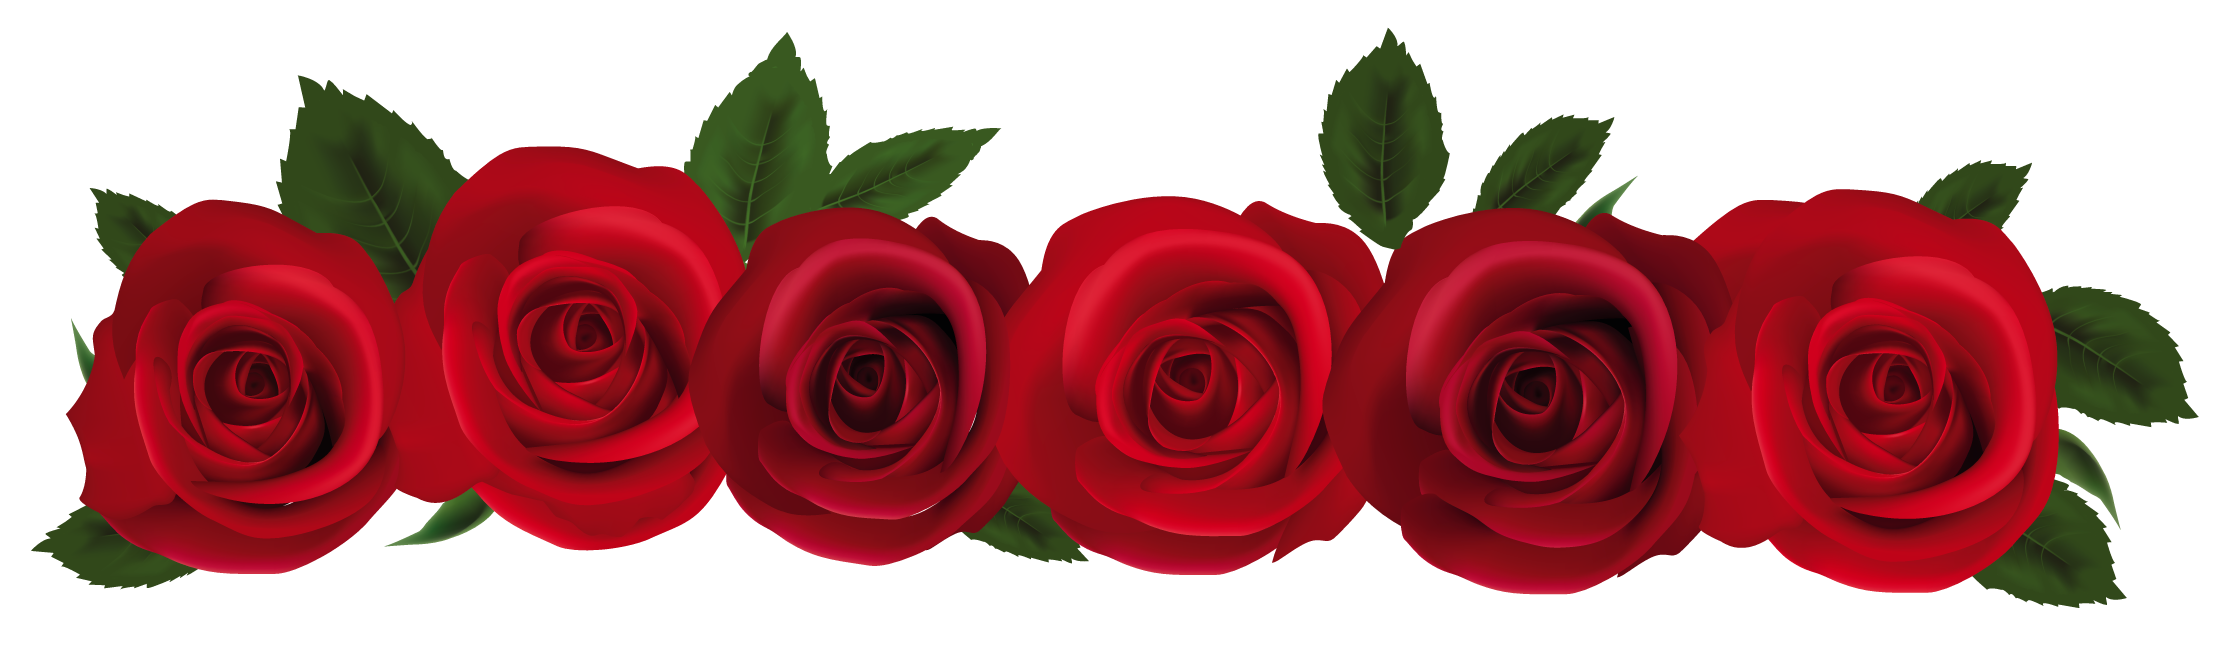 Rose clipart horizontal #11